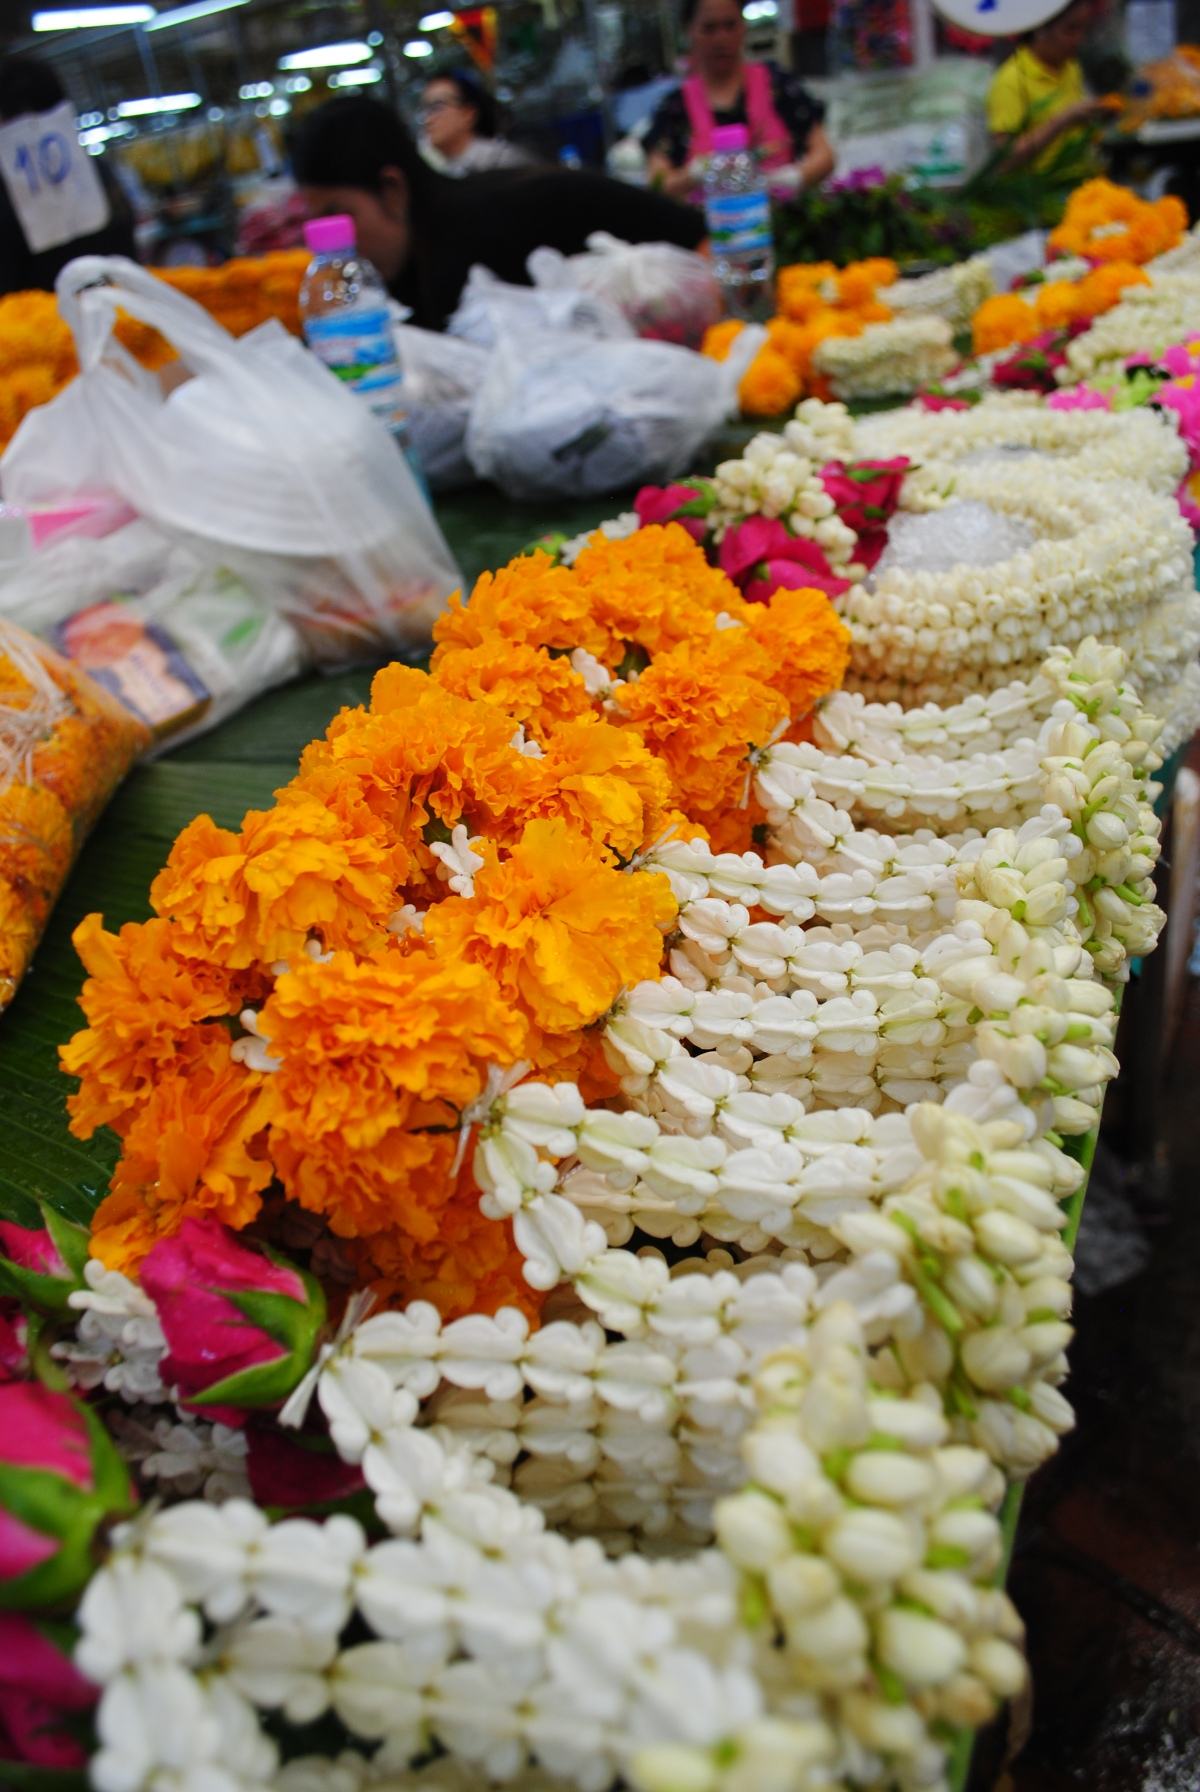 Bangkok's Biggest Flower Market